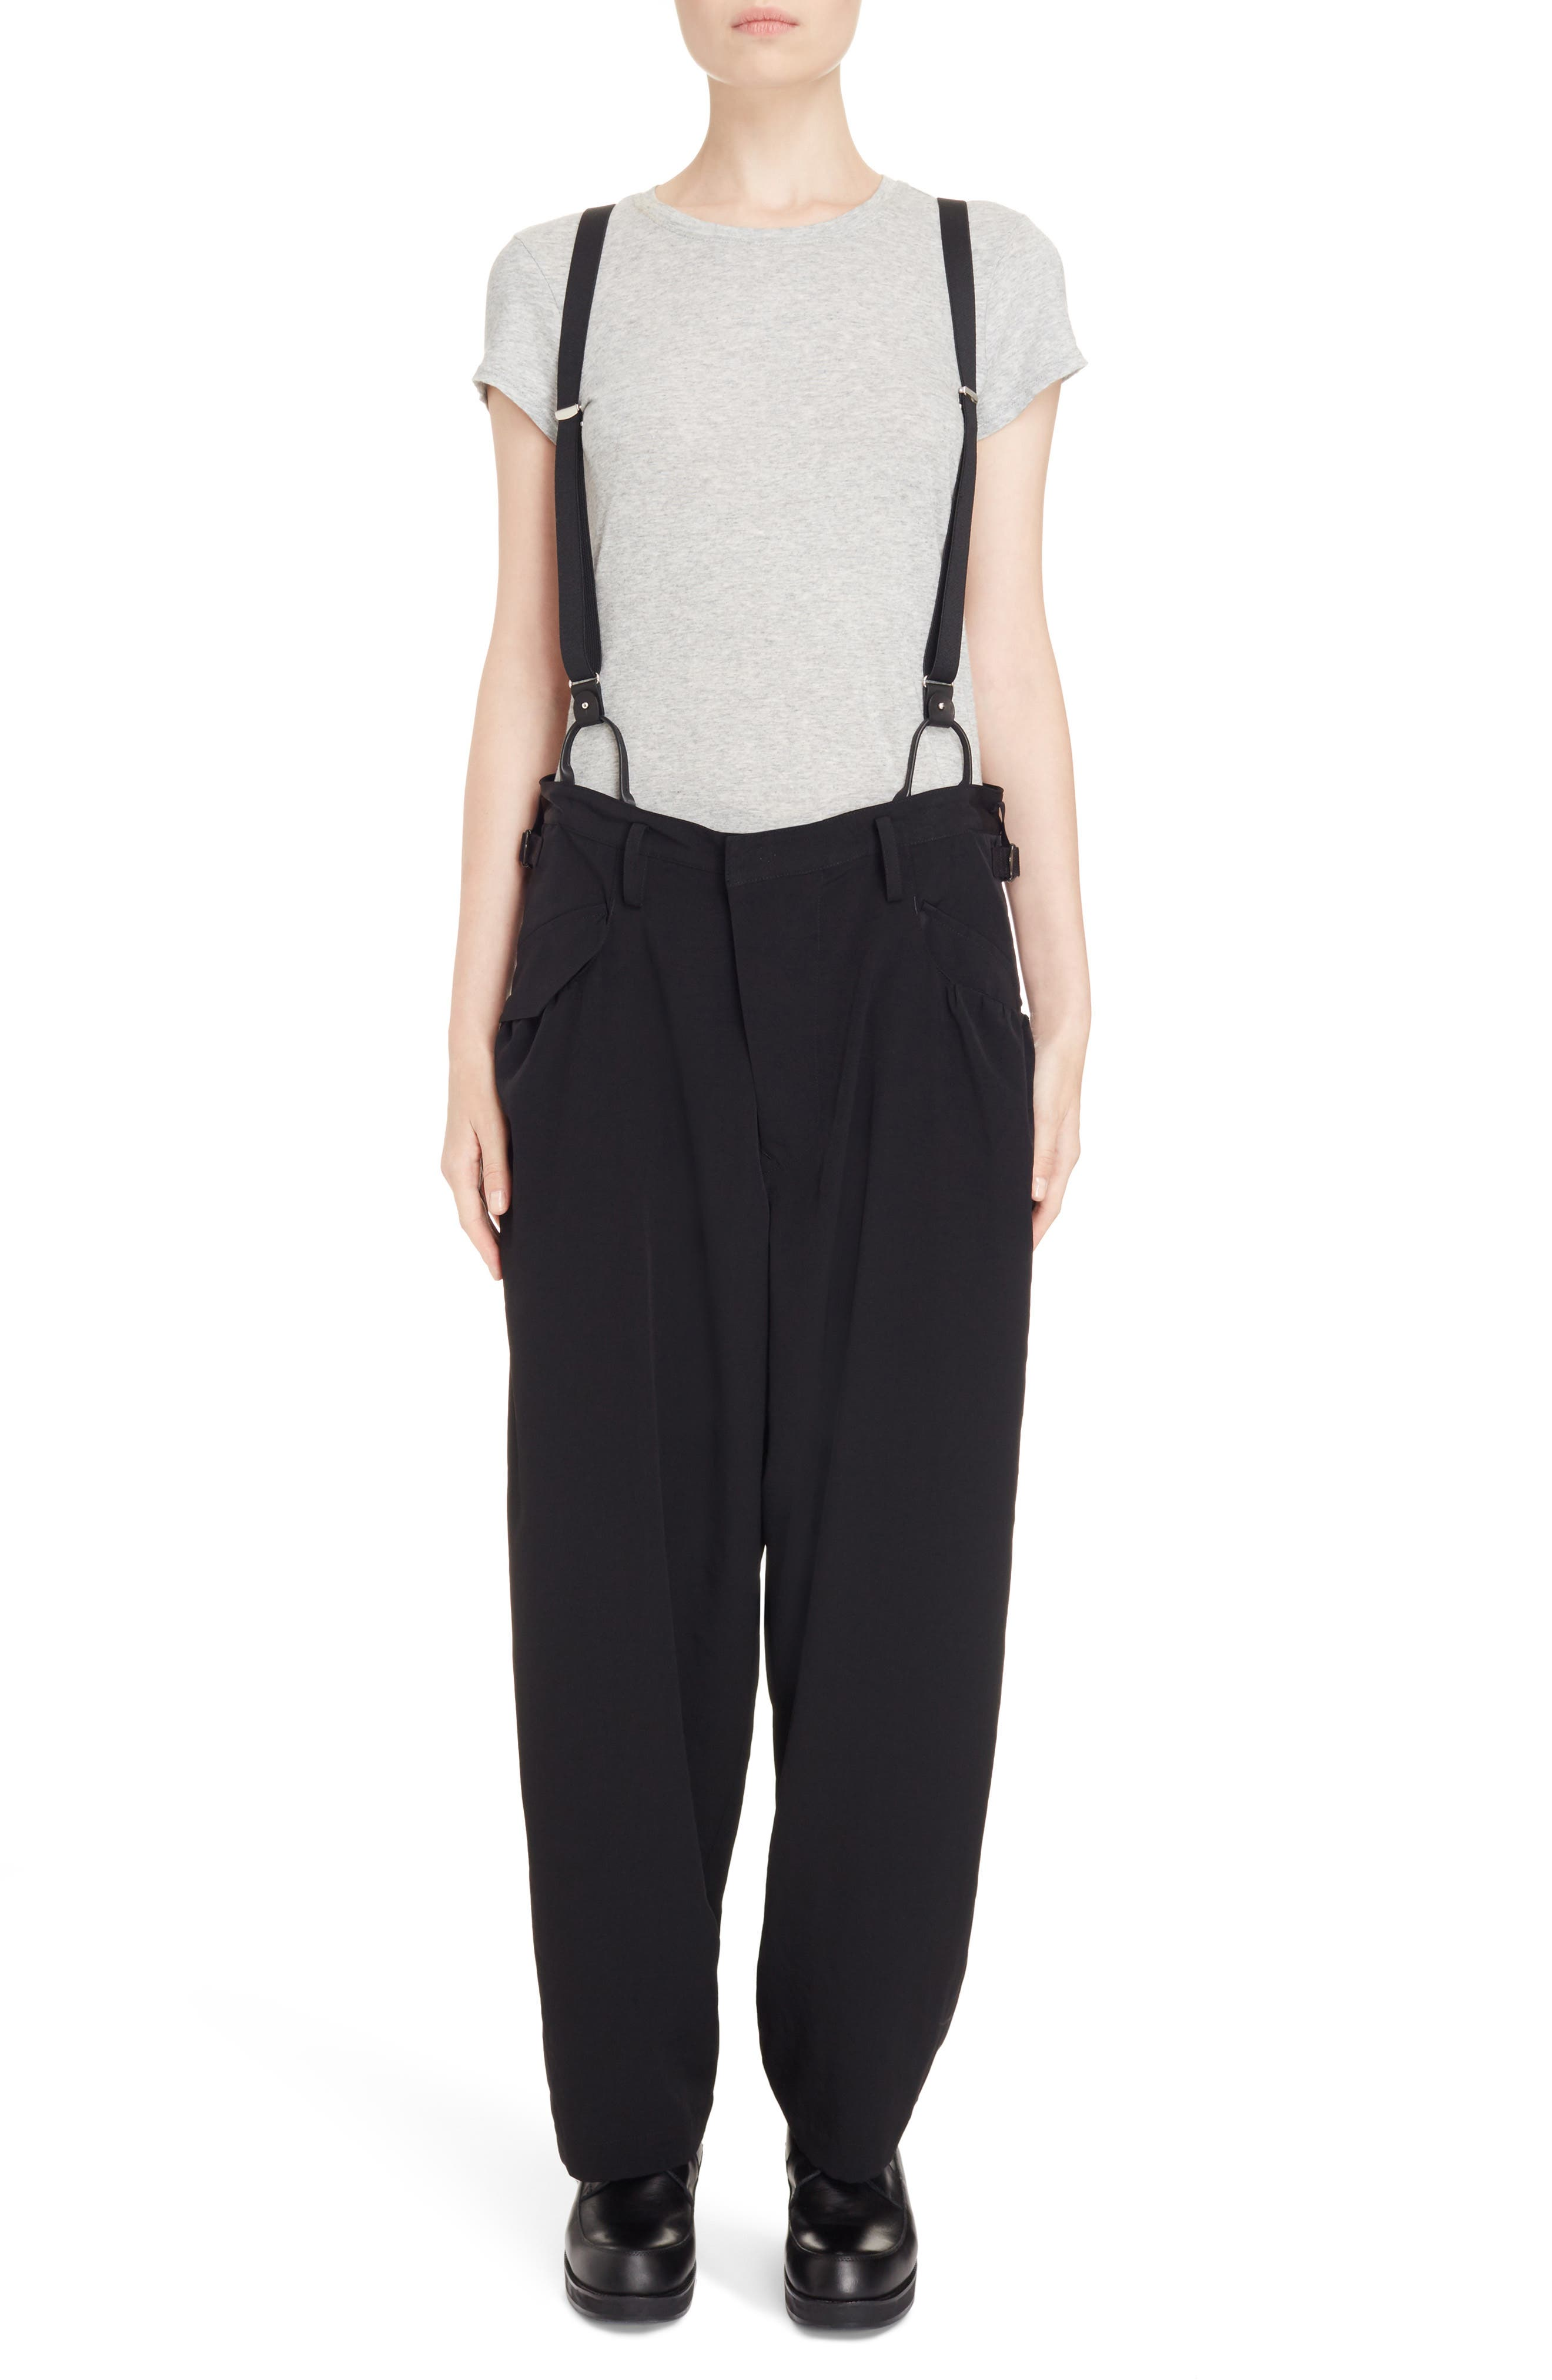 Main Image - Y's by Yohji Yamamoto Pants with Suspenders